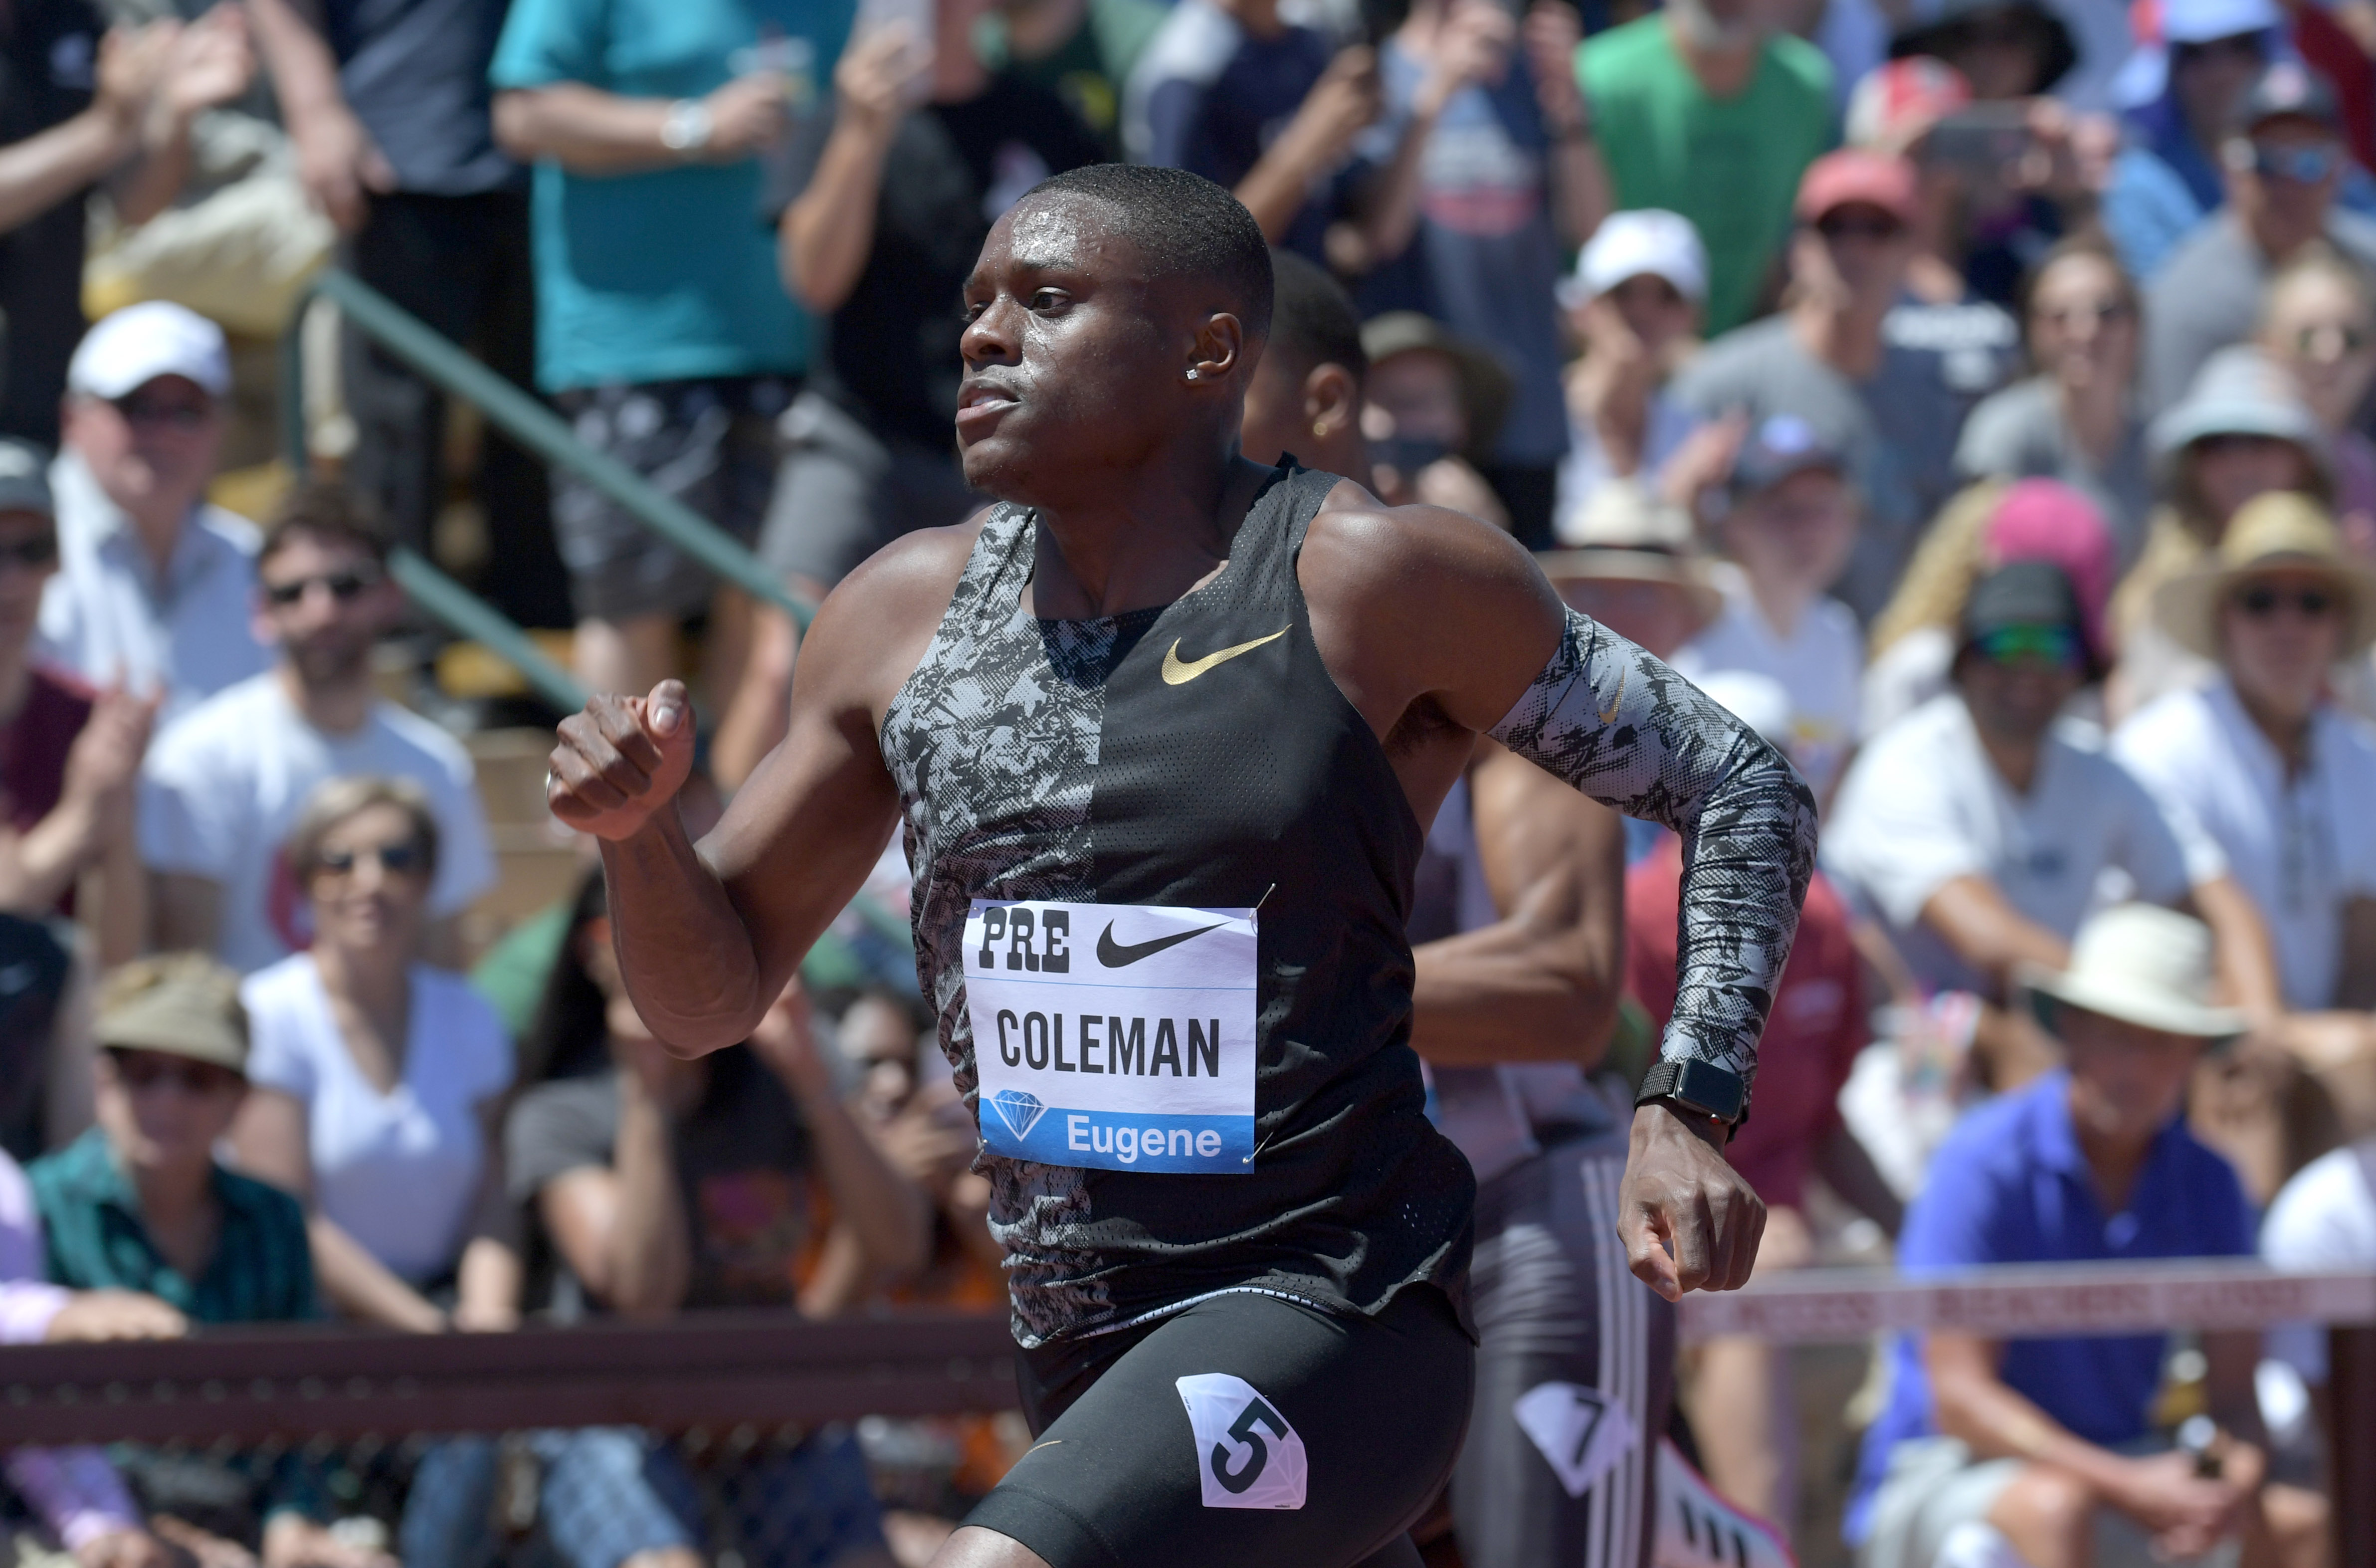 Track and Field: 45th Prefontaine Classic